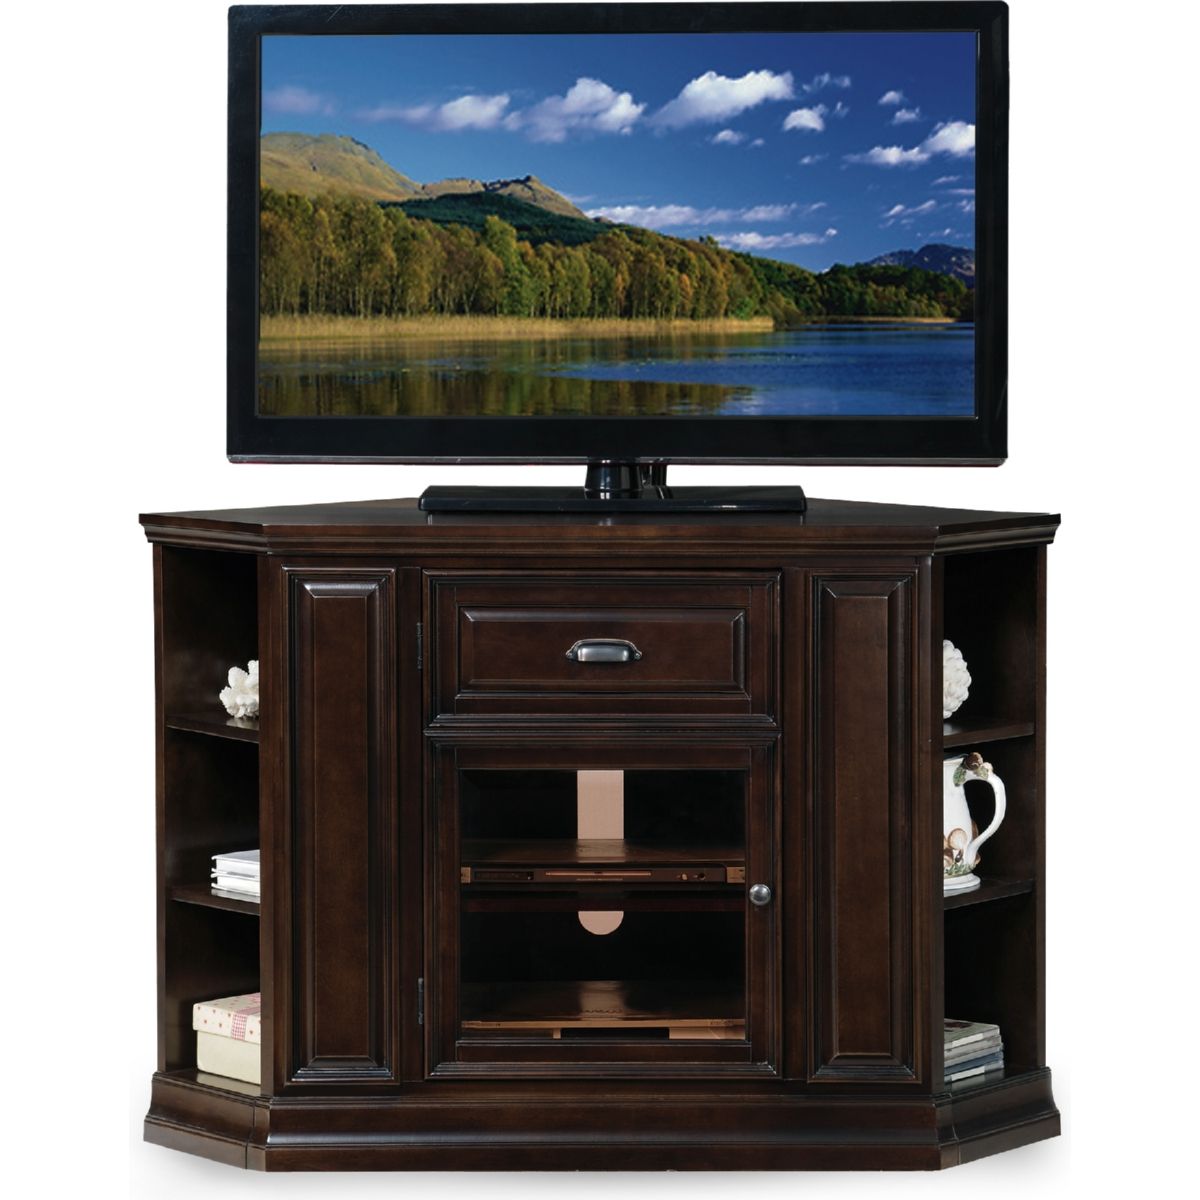 Black Gloss Corner Tv Stand With Recent Leick Furniture 86242 Chocolate Cherry 32 High Corner Tv Stand W (View 10 of 20)